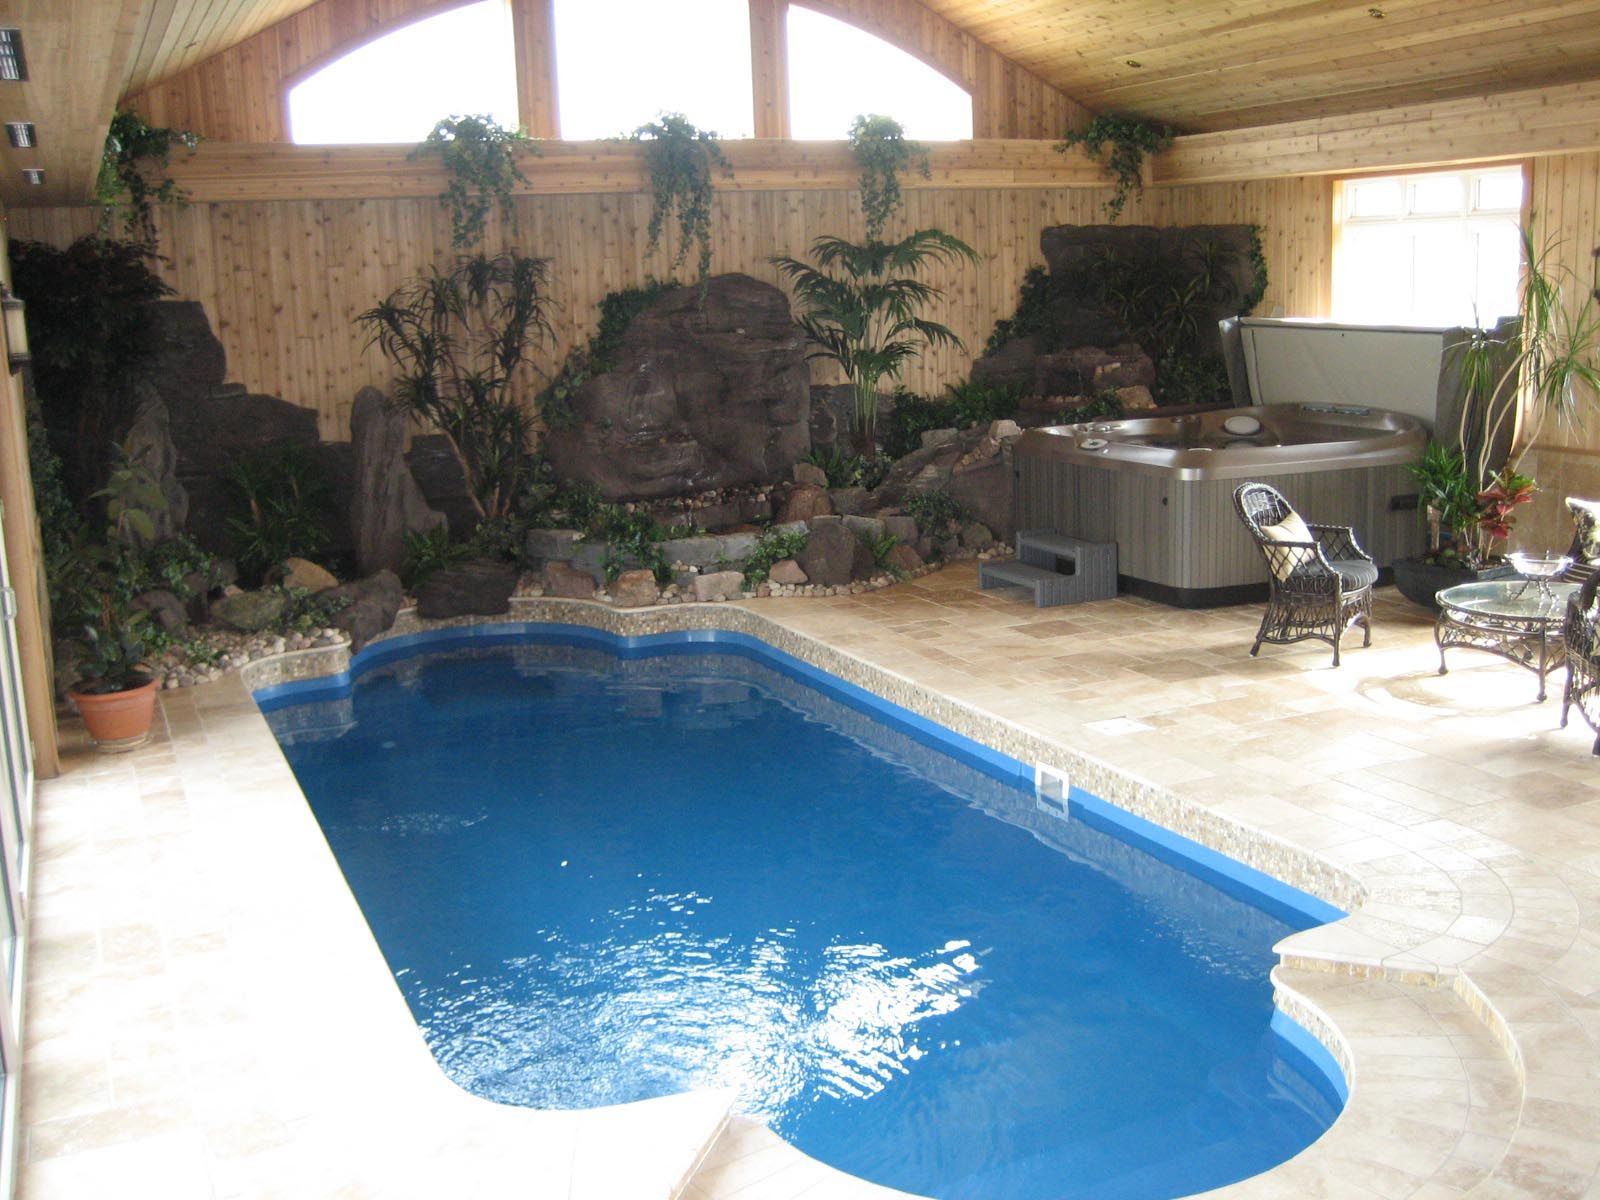 Small Indoor Pool Cost Backyard Design Ideas Indoor Pool Design Small Indoor Pool Indoor Swimming Pools